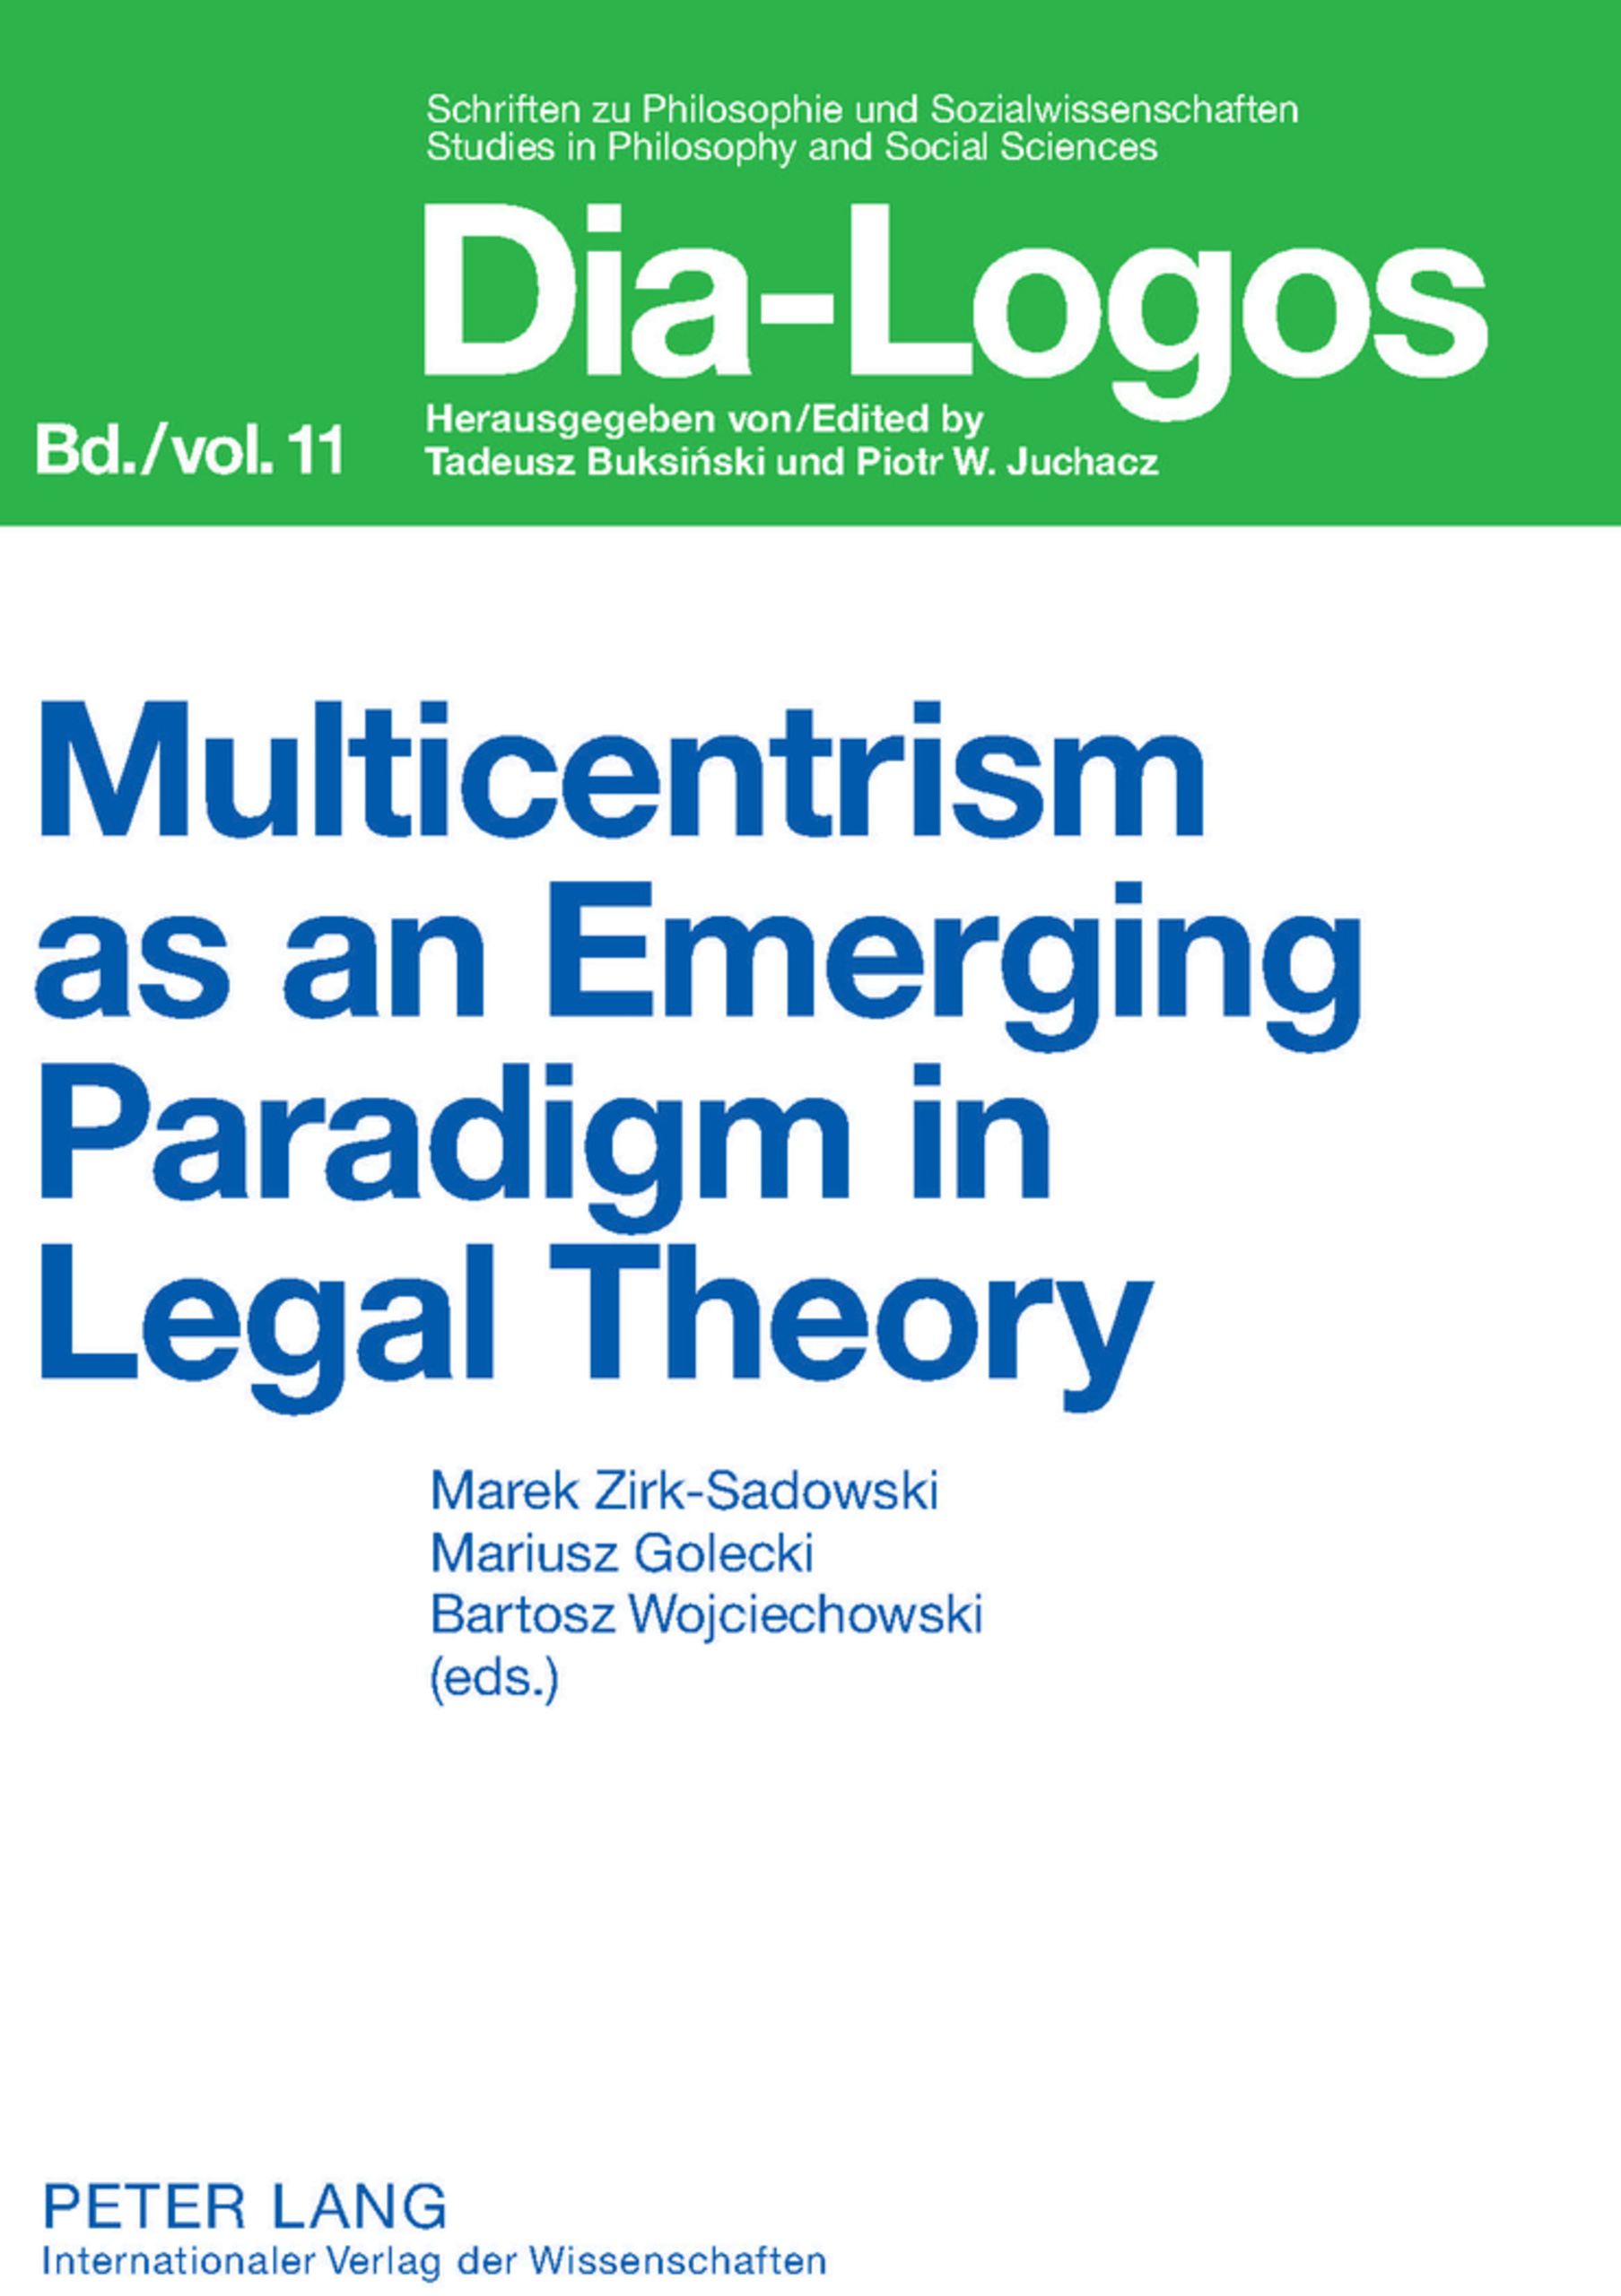 Titel: Multicentrism as an Emerging Paradigm in Legal Theory